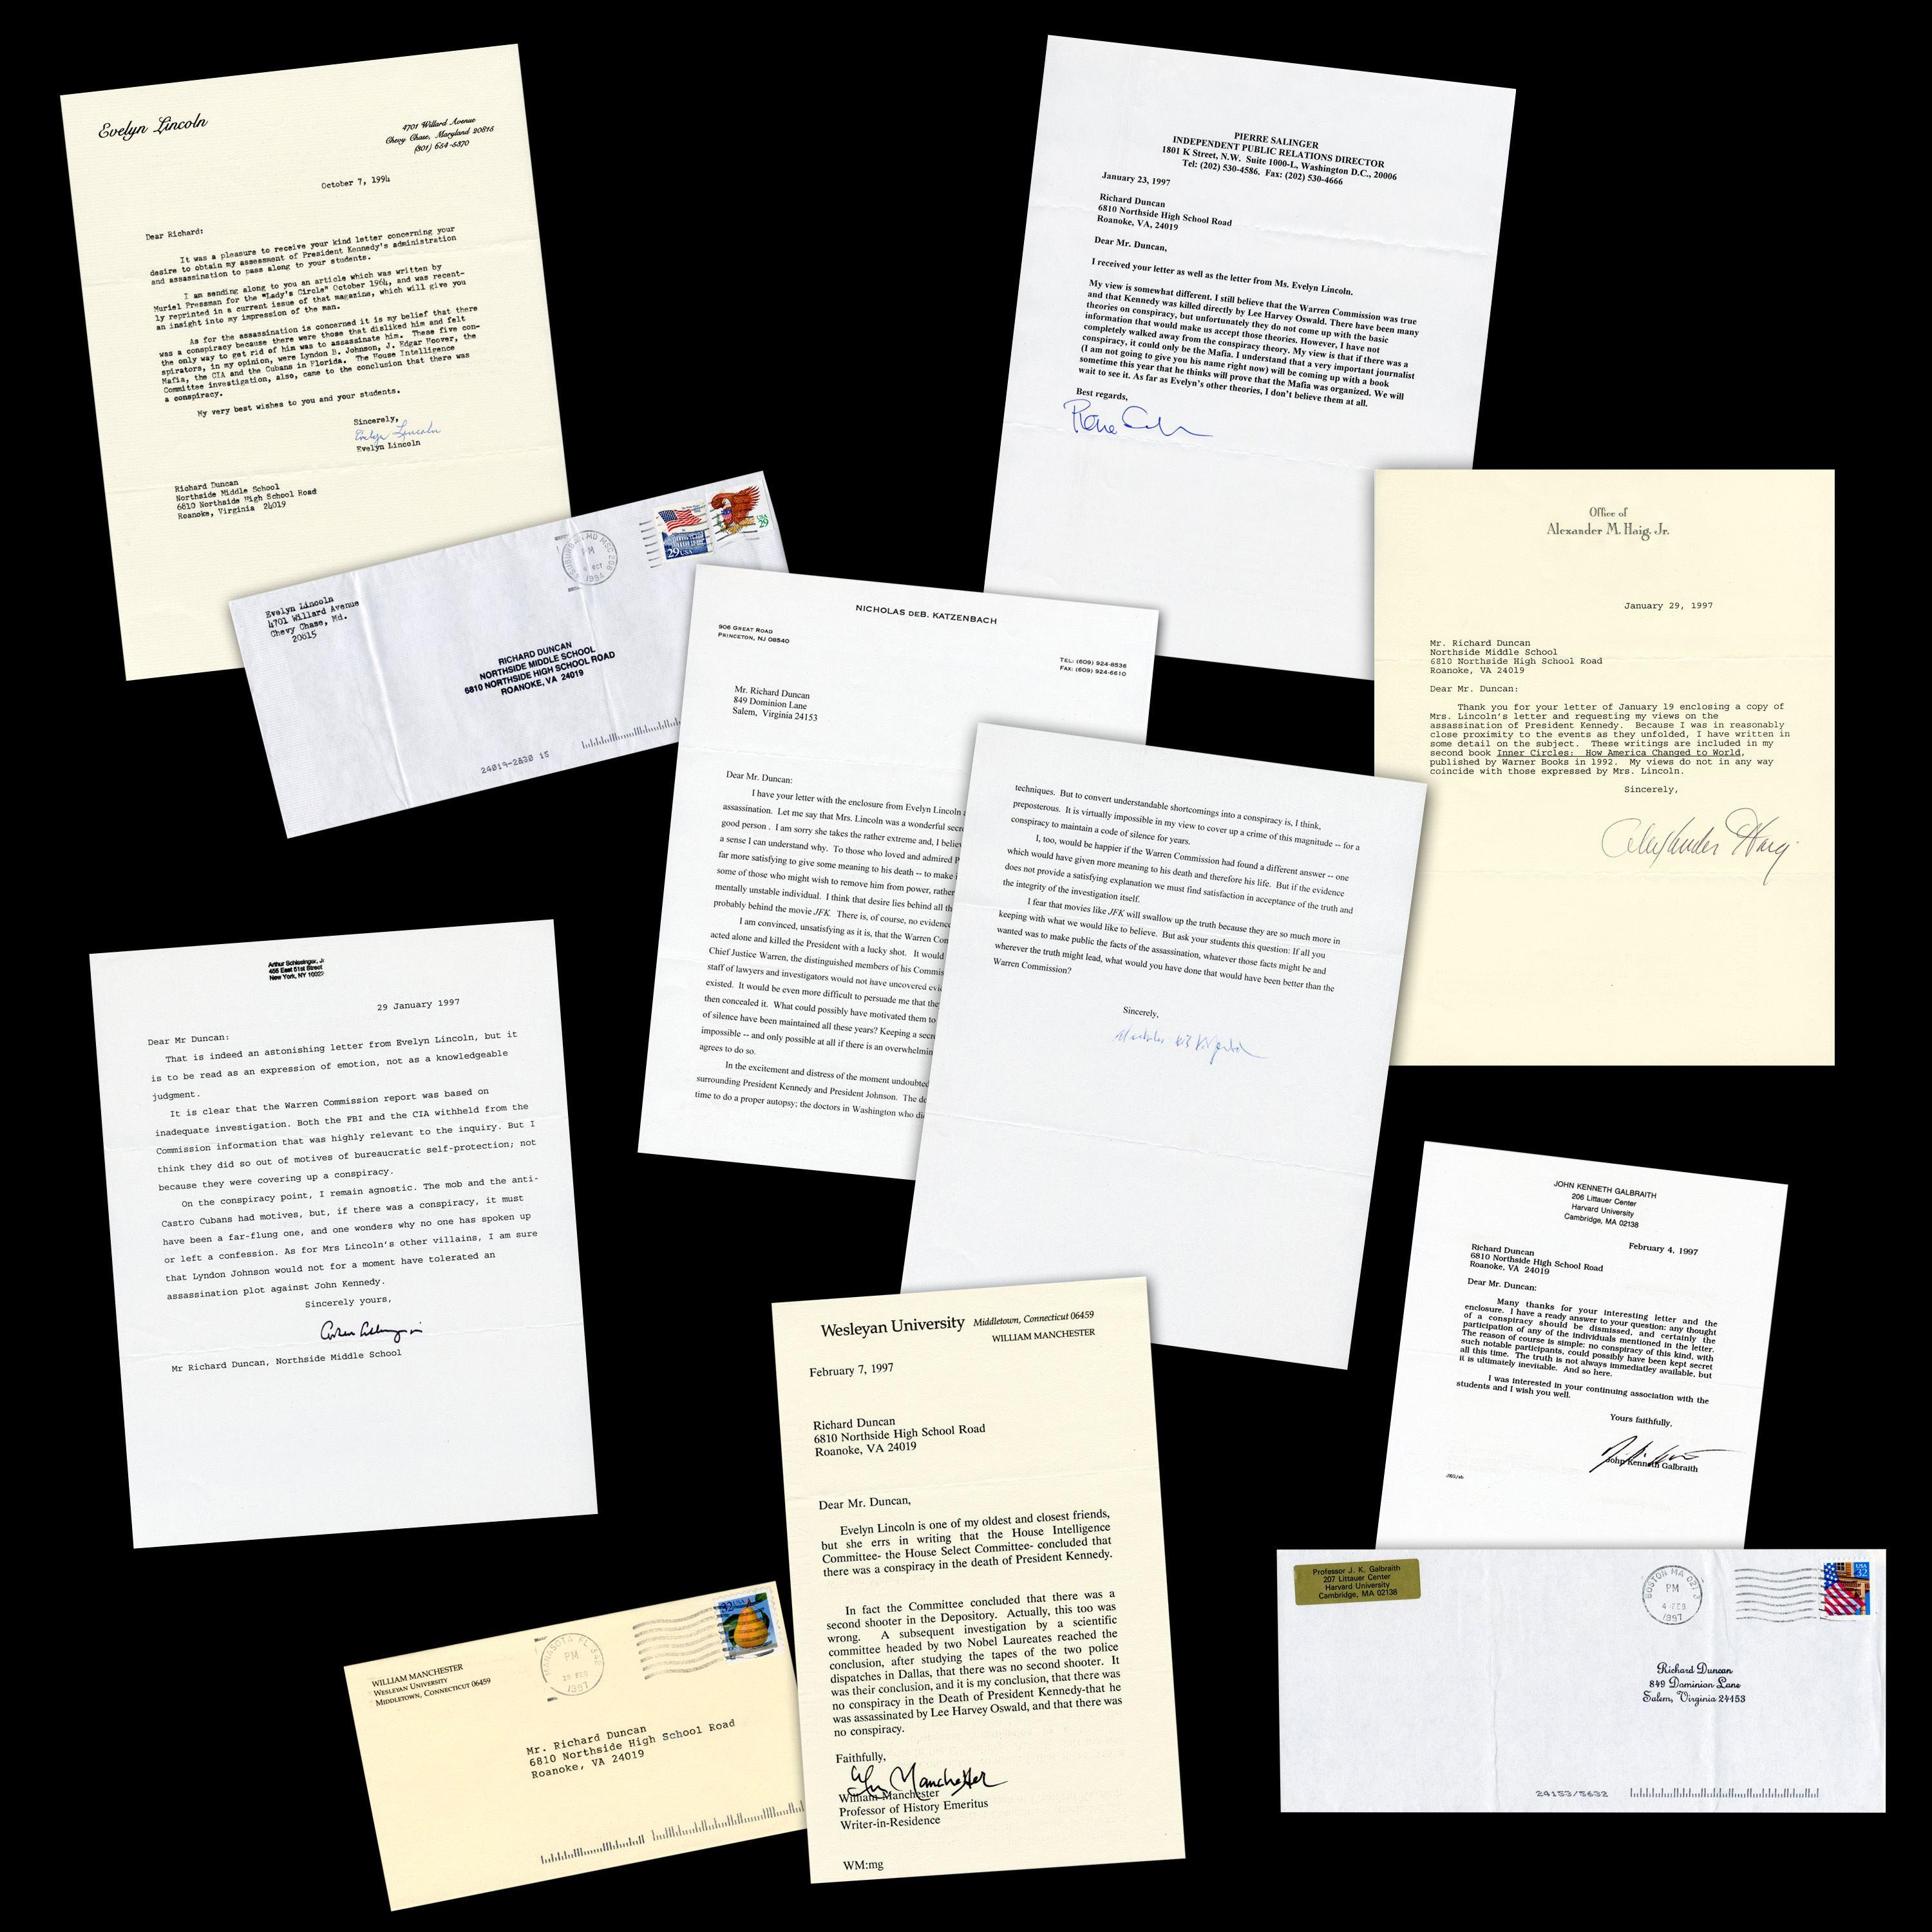 JFK Secretary Evelyn Lincoln Accuses LBJ, CIA, FBI & Mafia of Conspiring in Assassination, 6 Other Important letters Too!